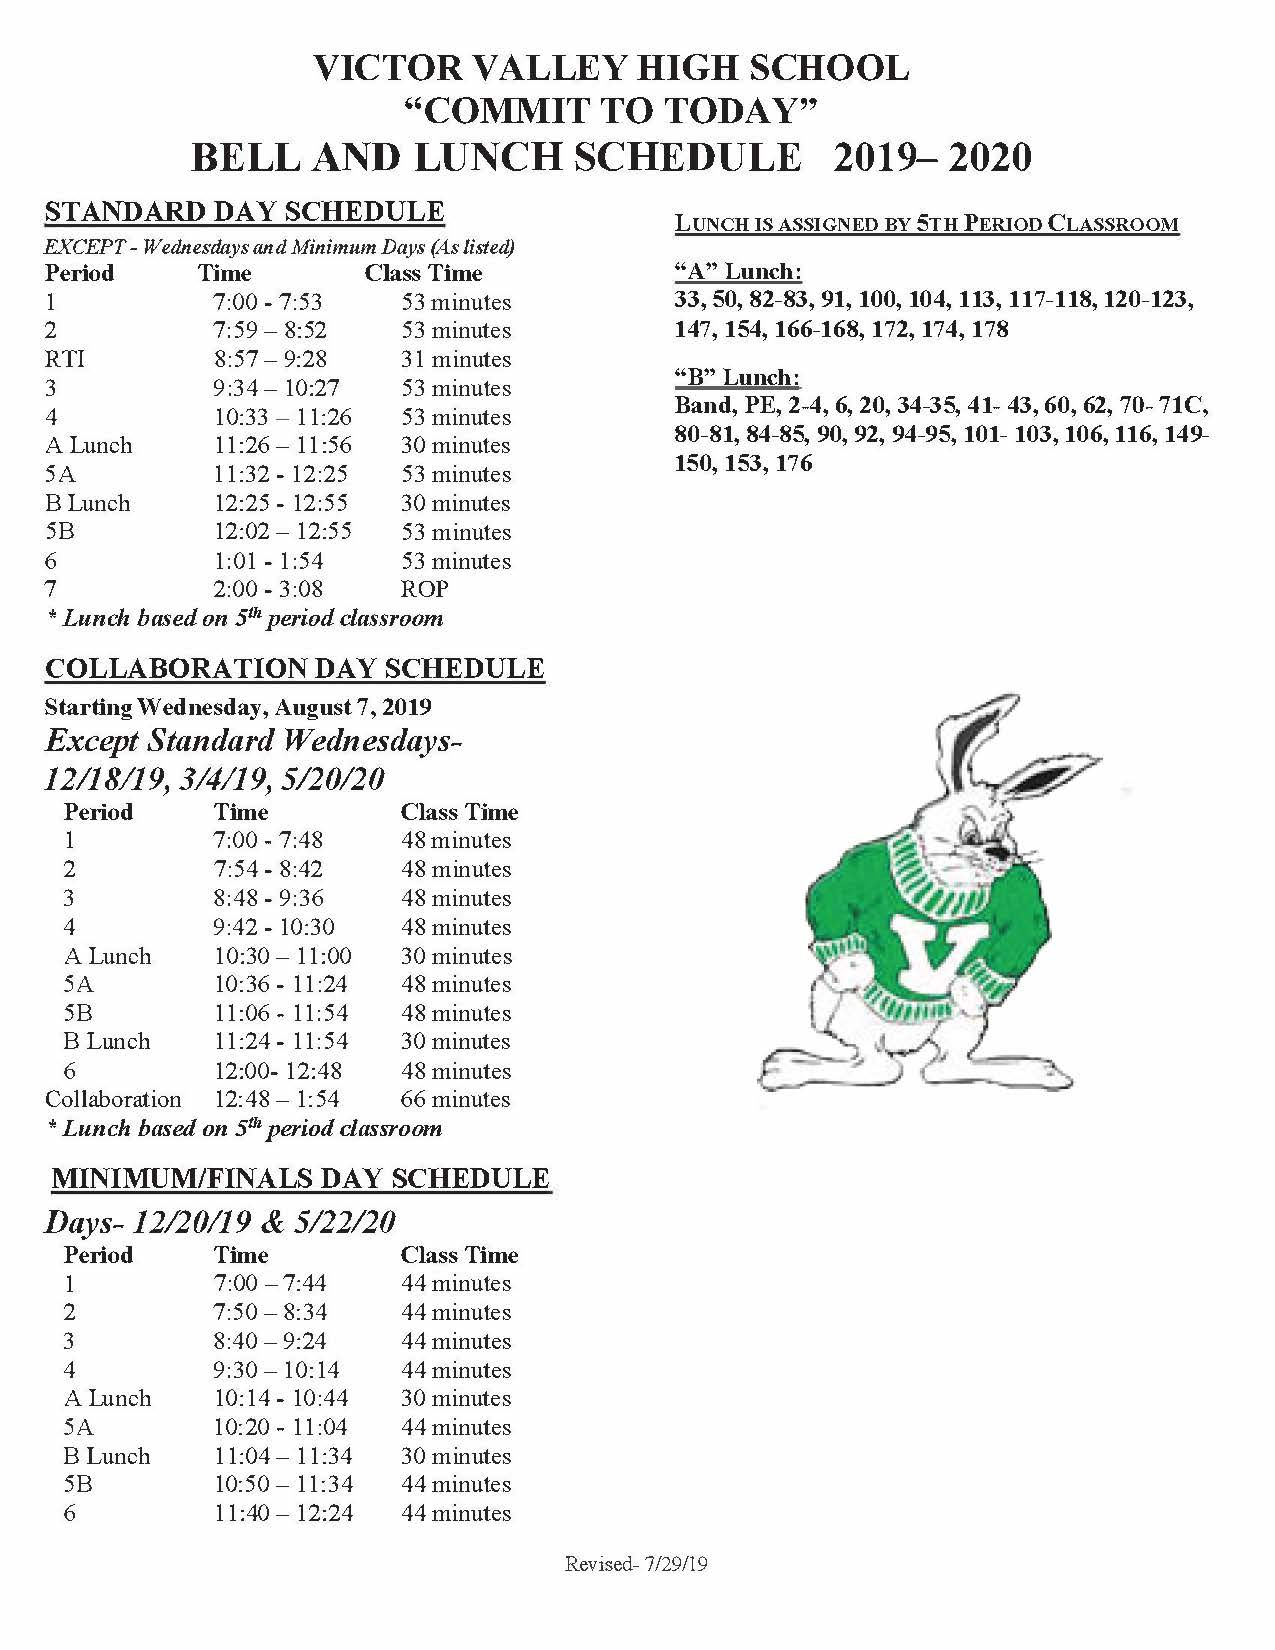 Bell Schedule 2019-2020 School Year - Victor Valley High School in Victorville School District Class Schedule